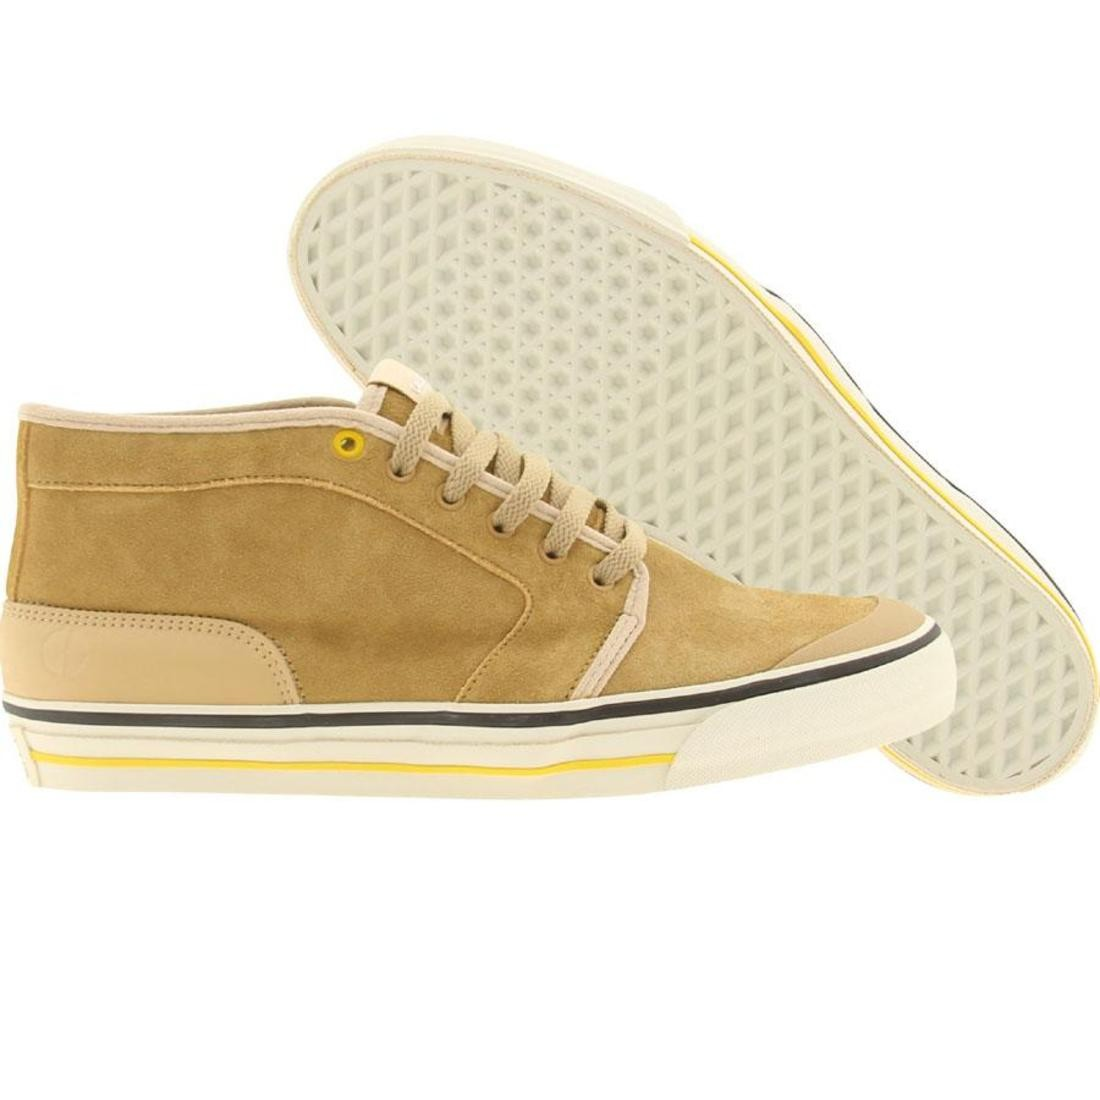 チャッカ 【 CAUSE MIDDLE CUT CHUKKA BEIGE 】 メンズ